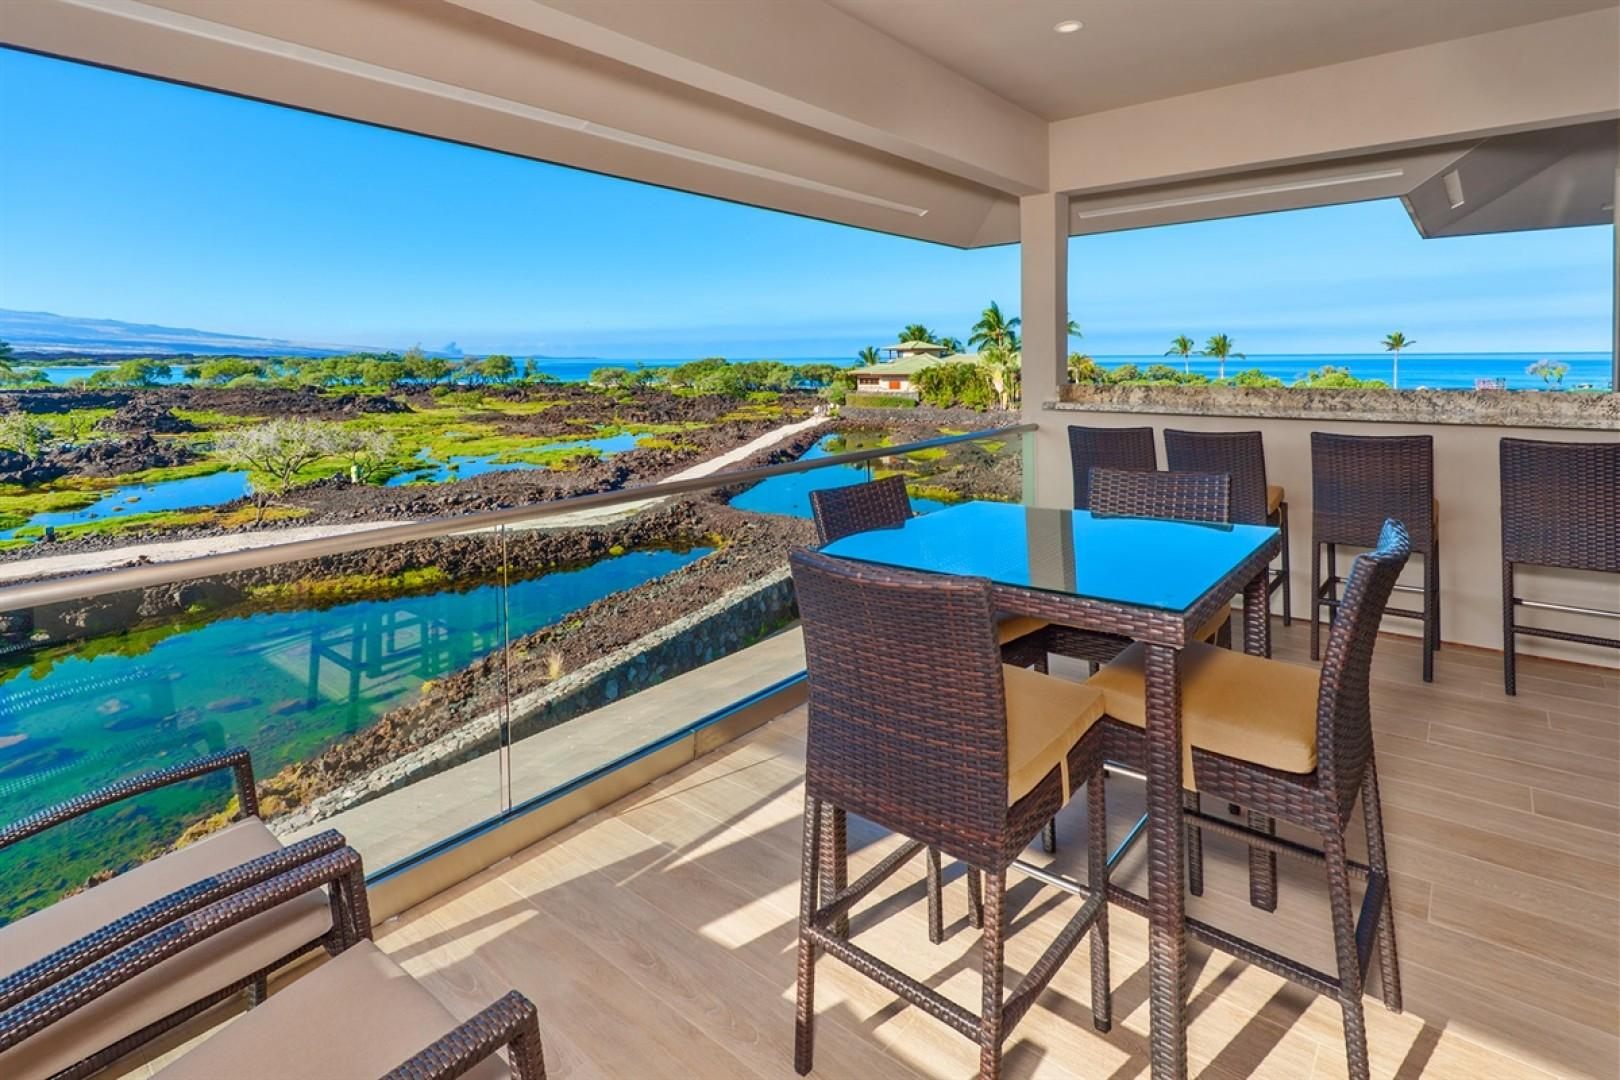 Second floor lanai with sweeping ocean, coastline and fish pond views.